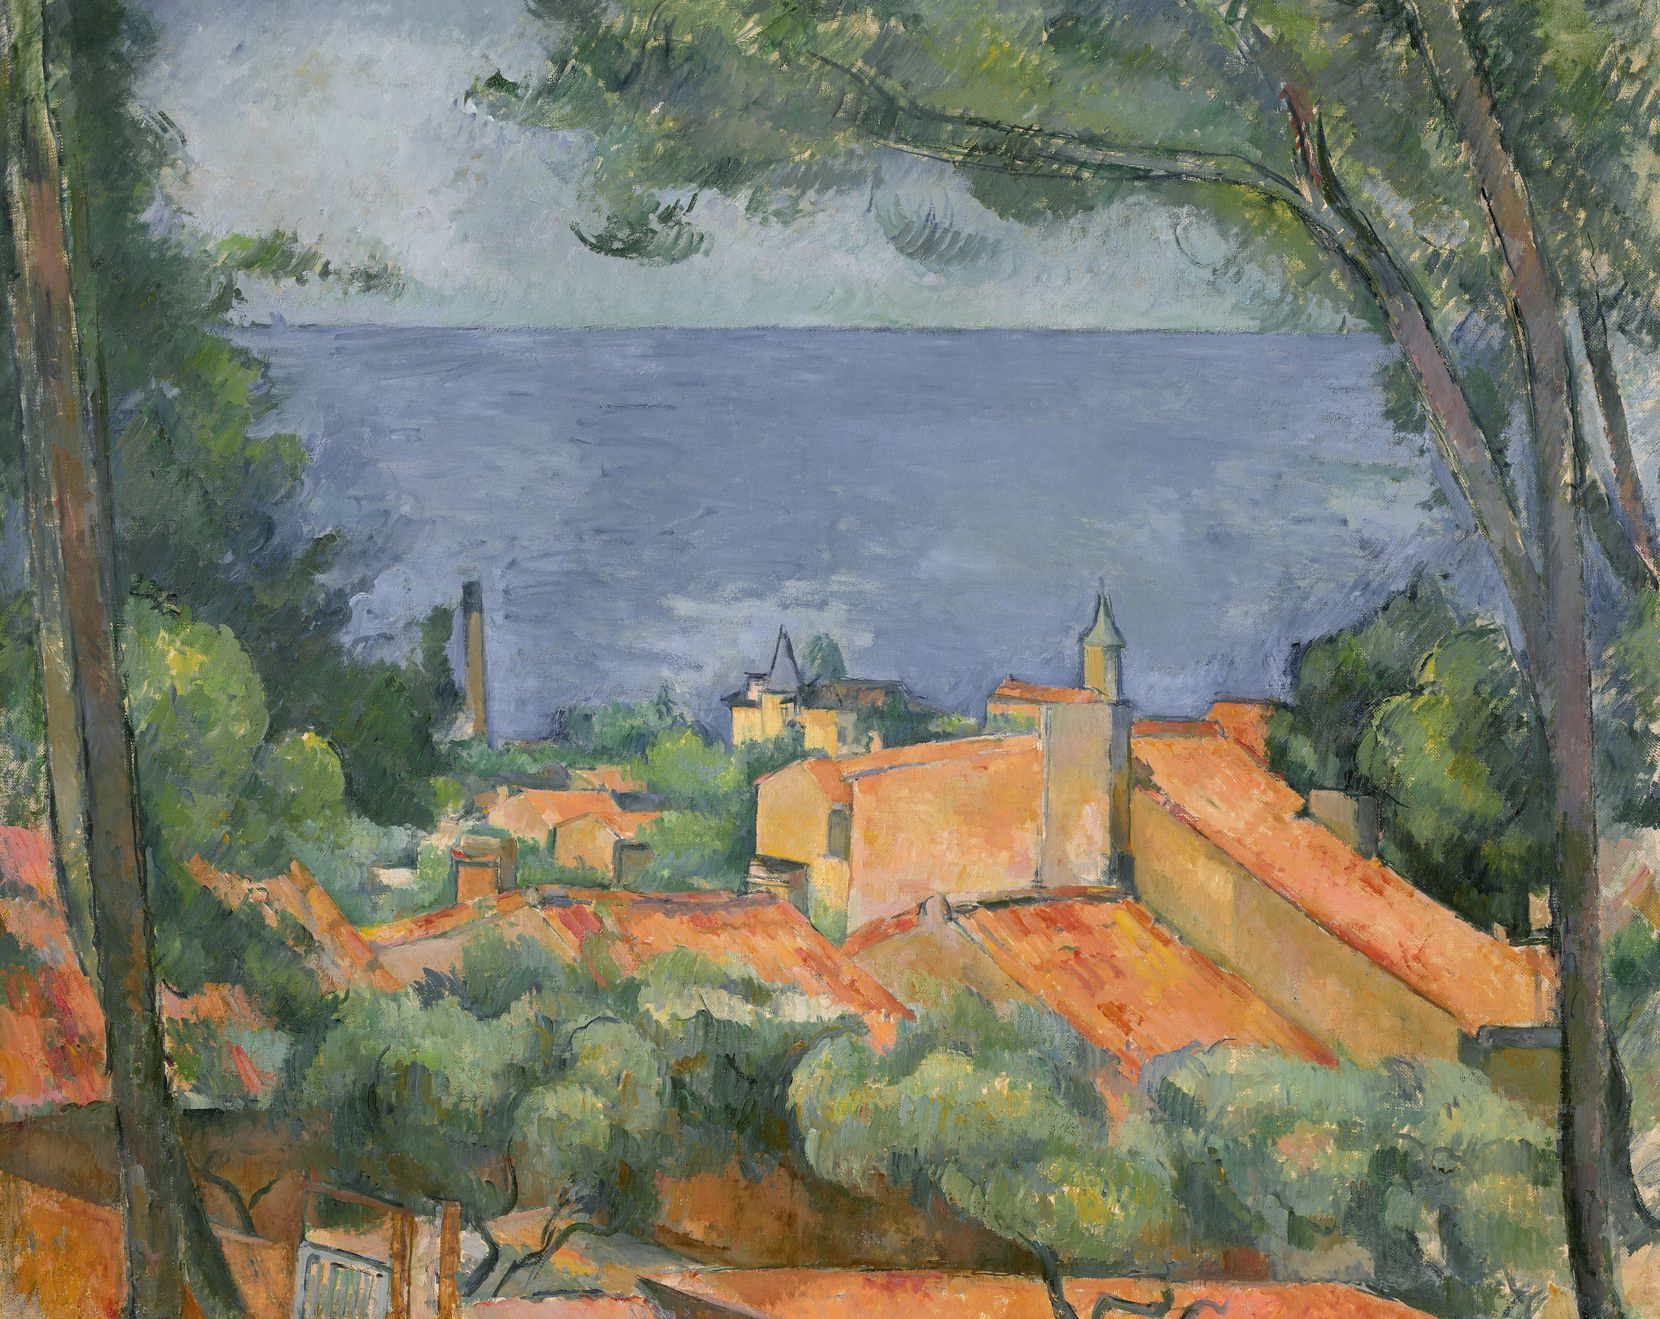 """Christie's estimated that """"L'Estaque Aux Toits Rouges"""" painted by Paul Cézanne could bring in $35 million to $55 million when it comes up for auction in November as part of the collection of the late Edwin """"Ed"""" L. Cox."""